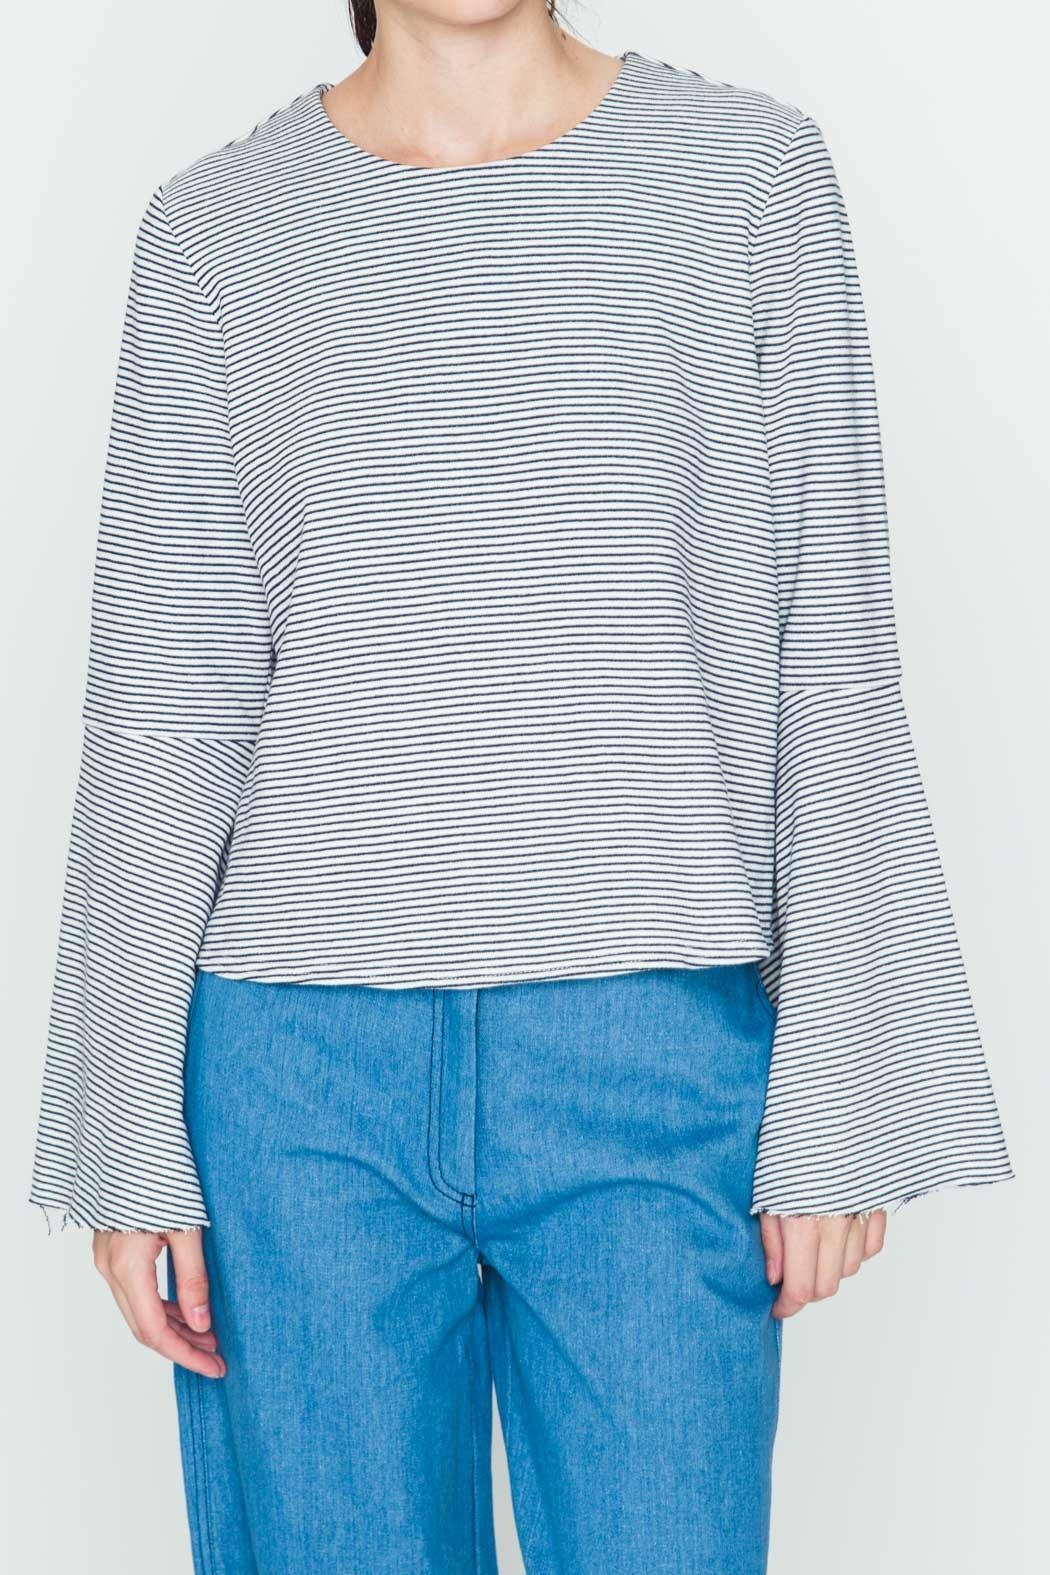 Movint Striped Flowy-Sleeve Top - Main Image